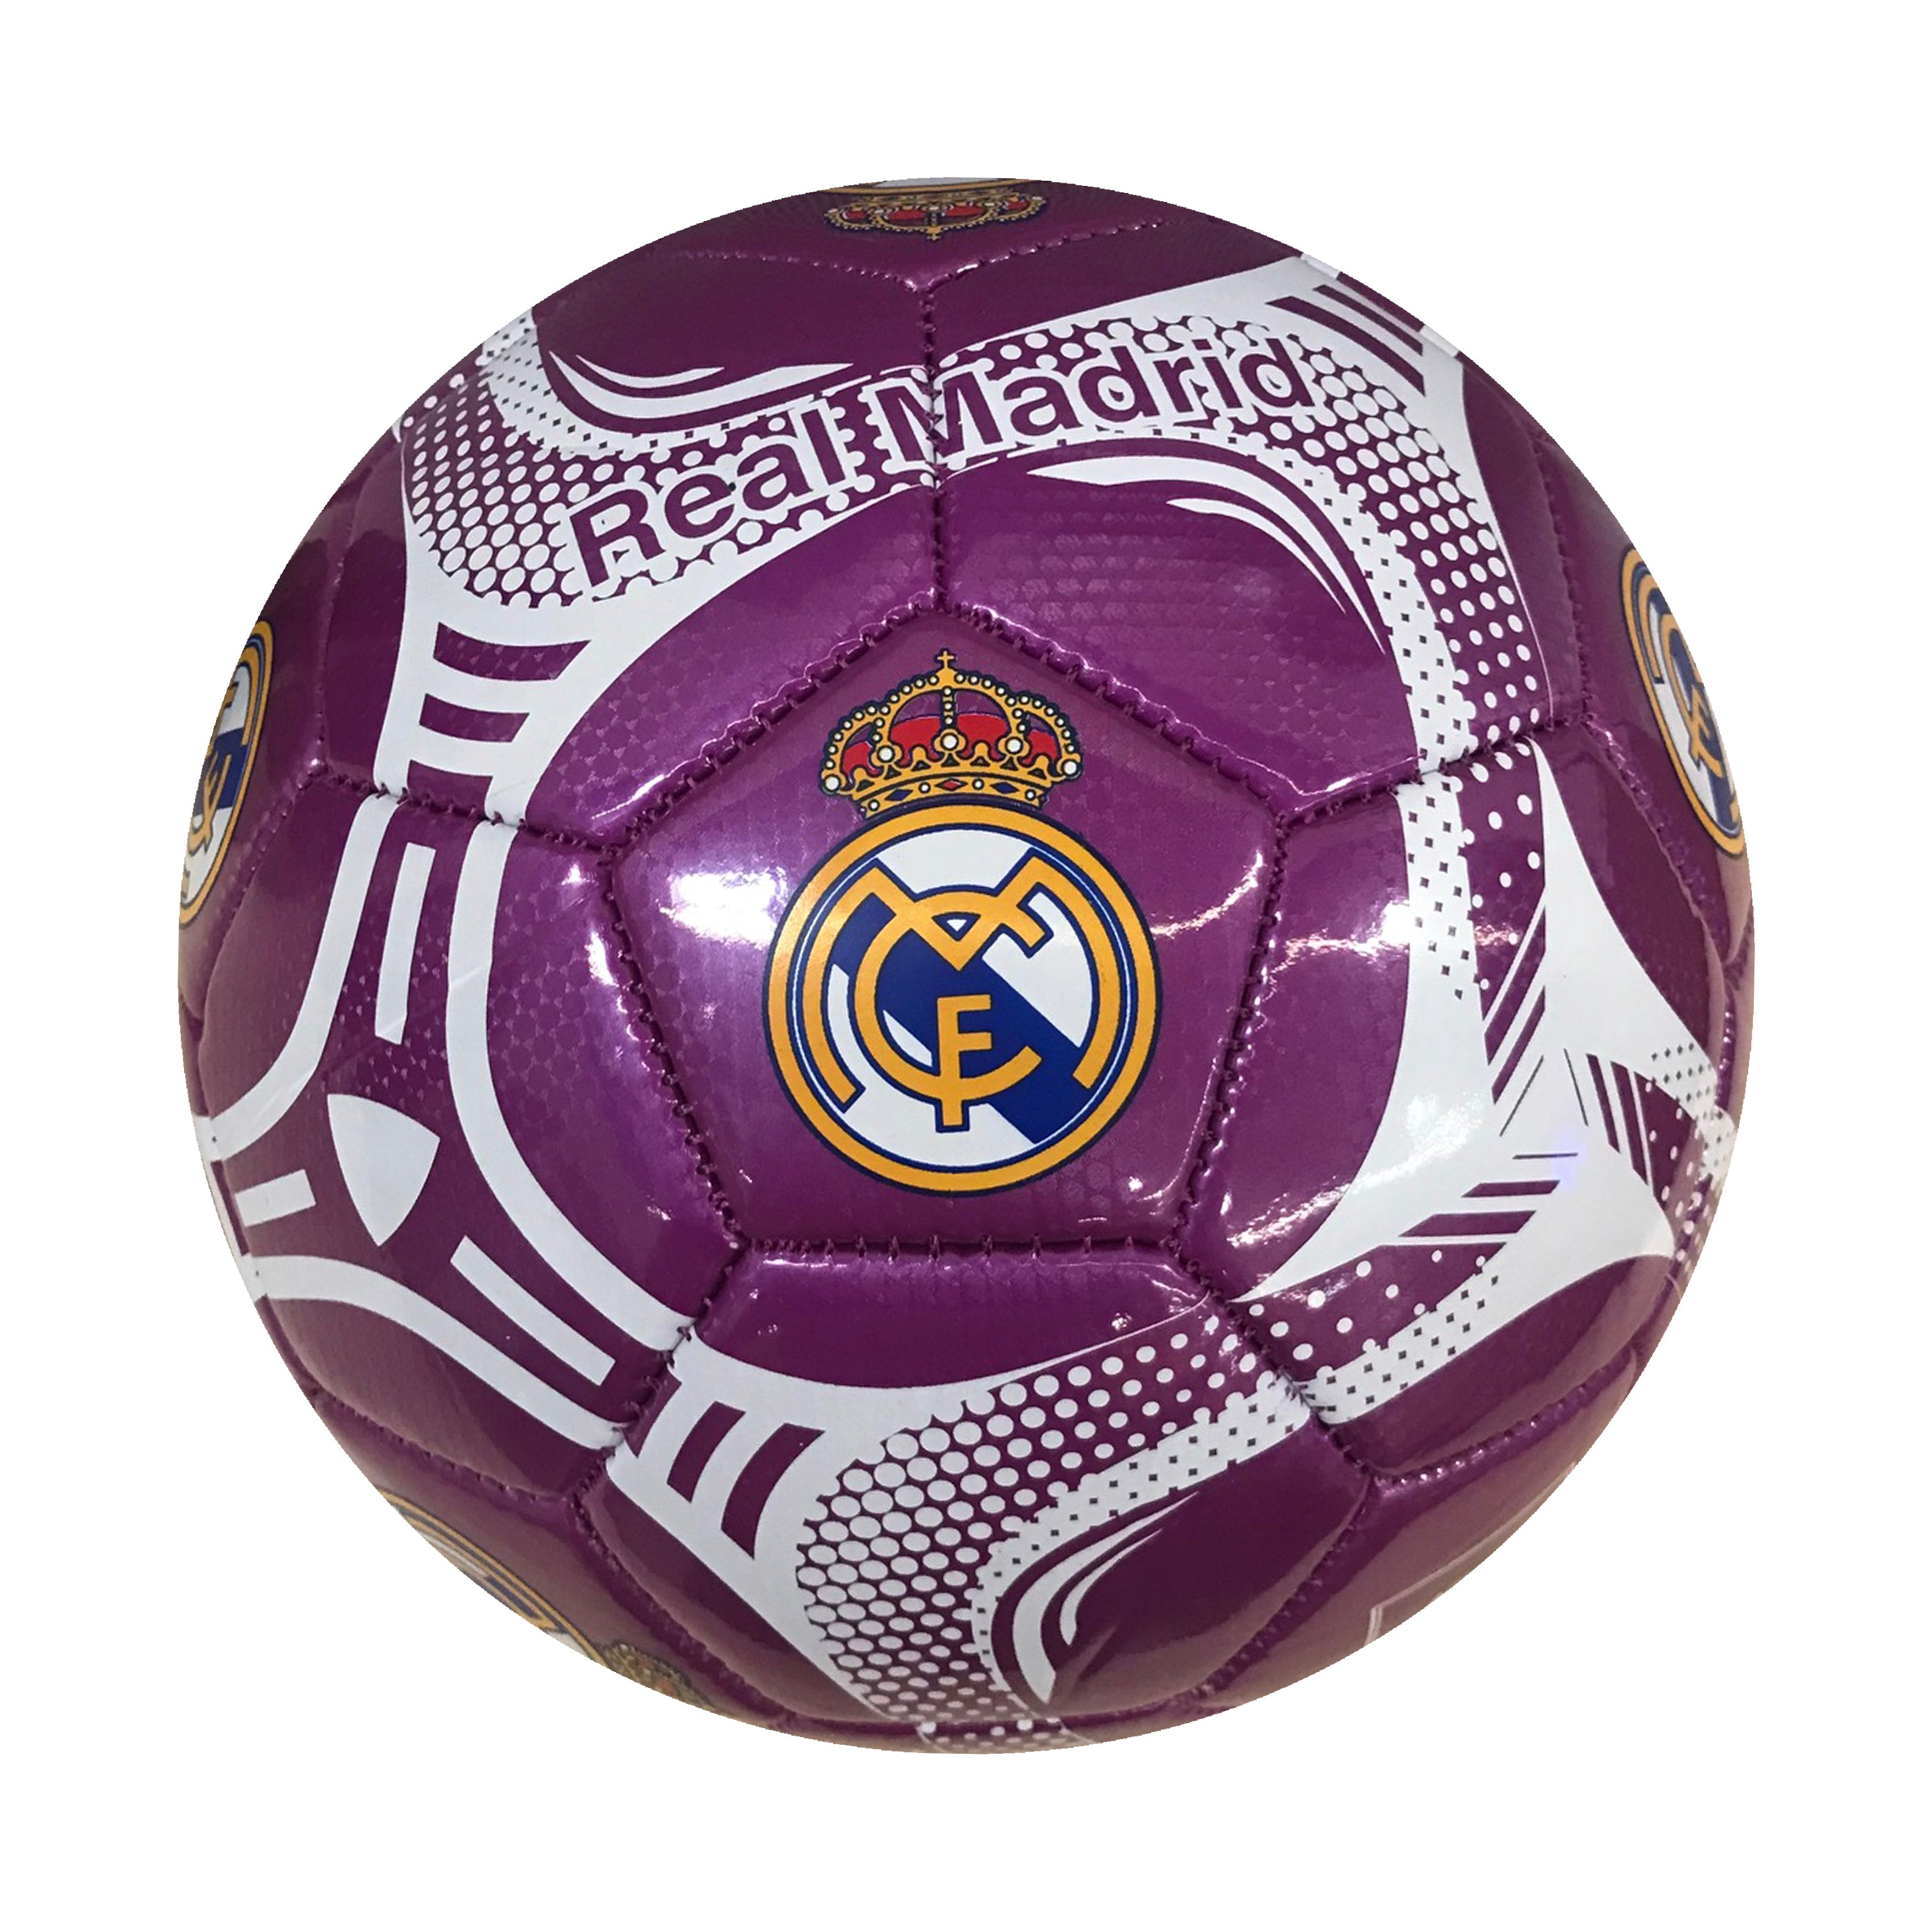 Real Madrid Purple Comet Size 5 Soccer Ball by Icon Sports